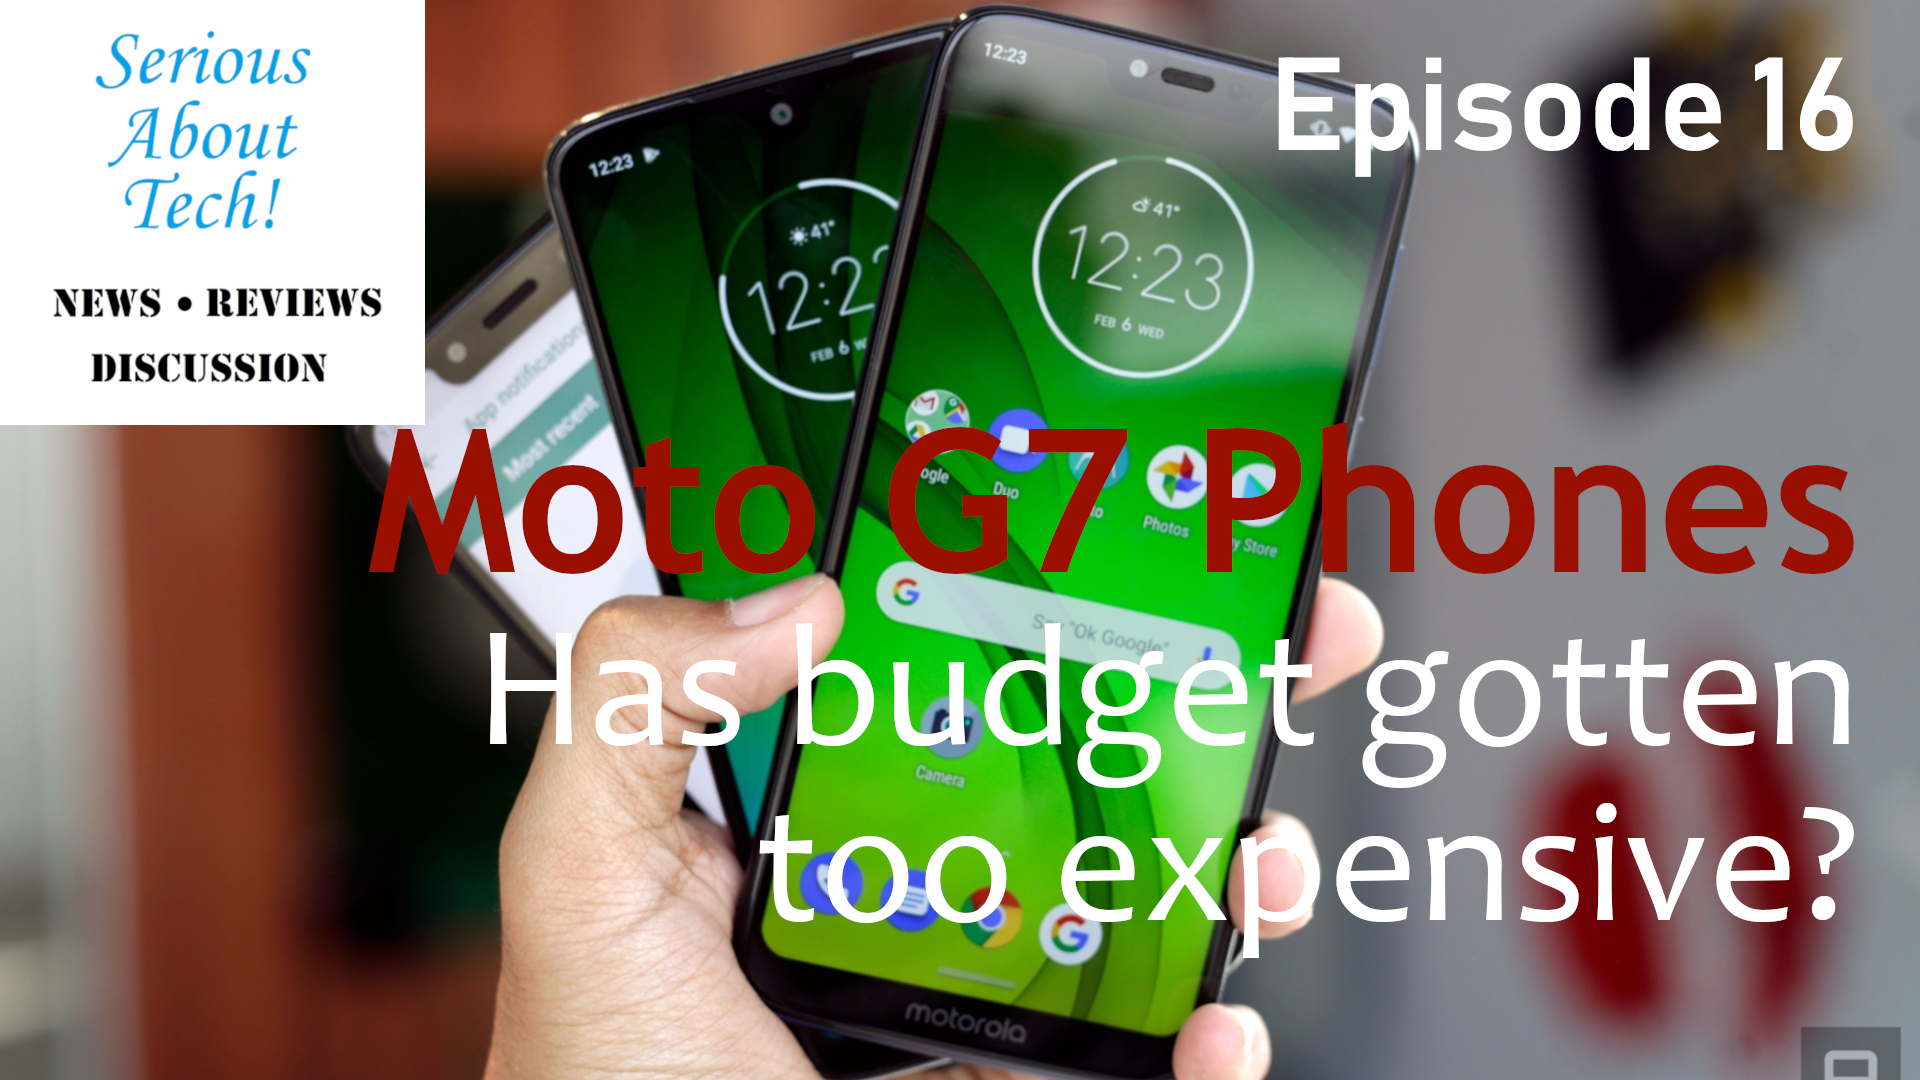 Moto G7 phones behind the Episode 16 title text: Moto G7 Phones: Has budget gotten too expensive? Photo from engadget.